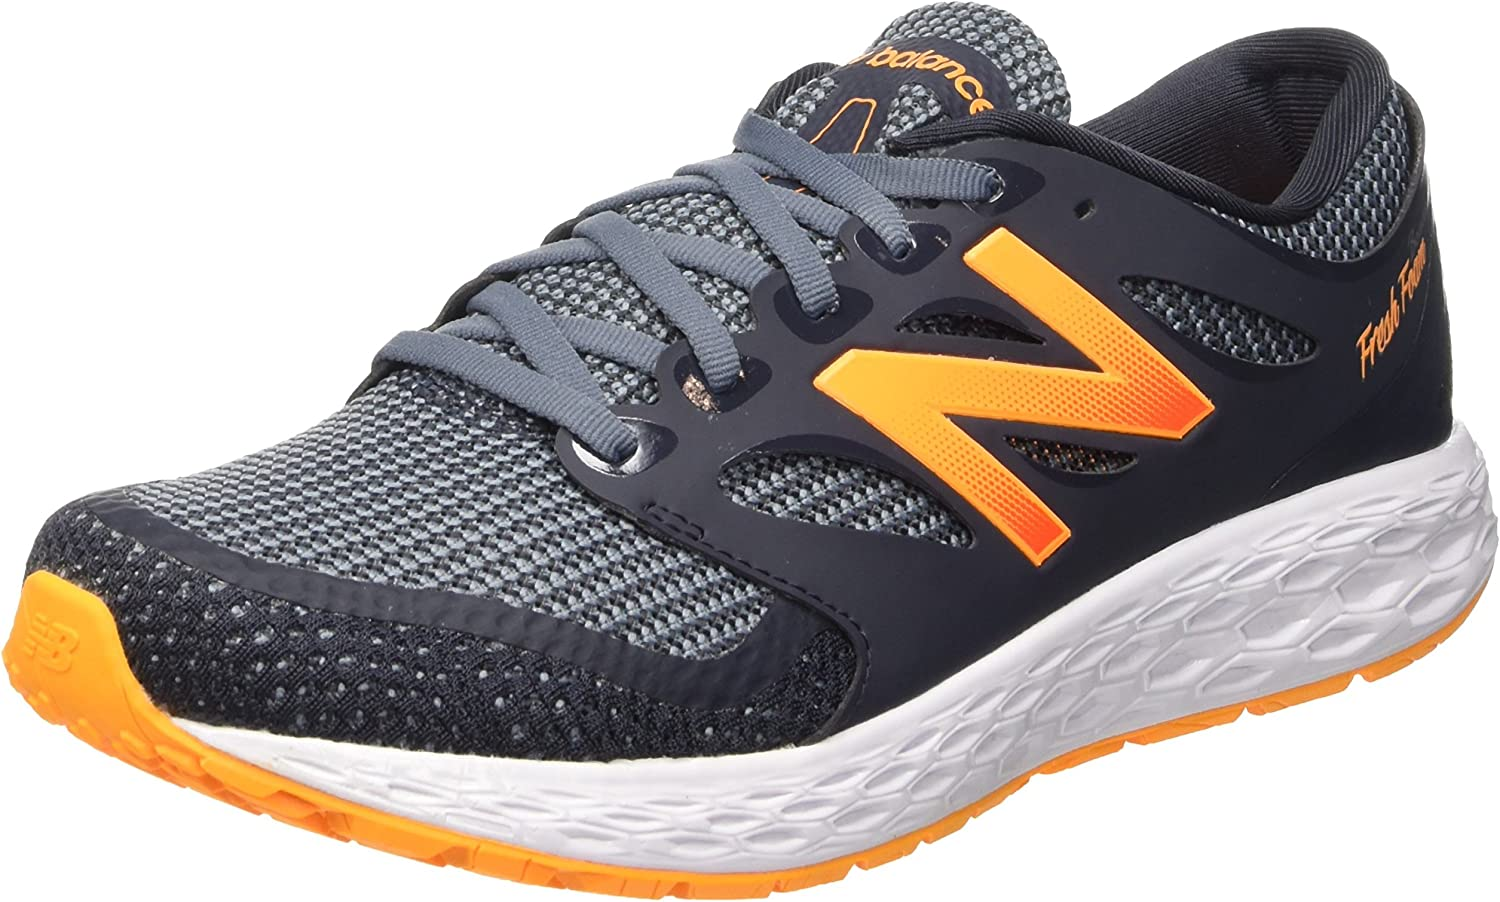 New Balance Men's's Nbmborabo2 Running shoes